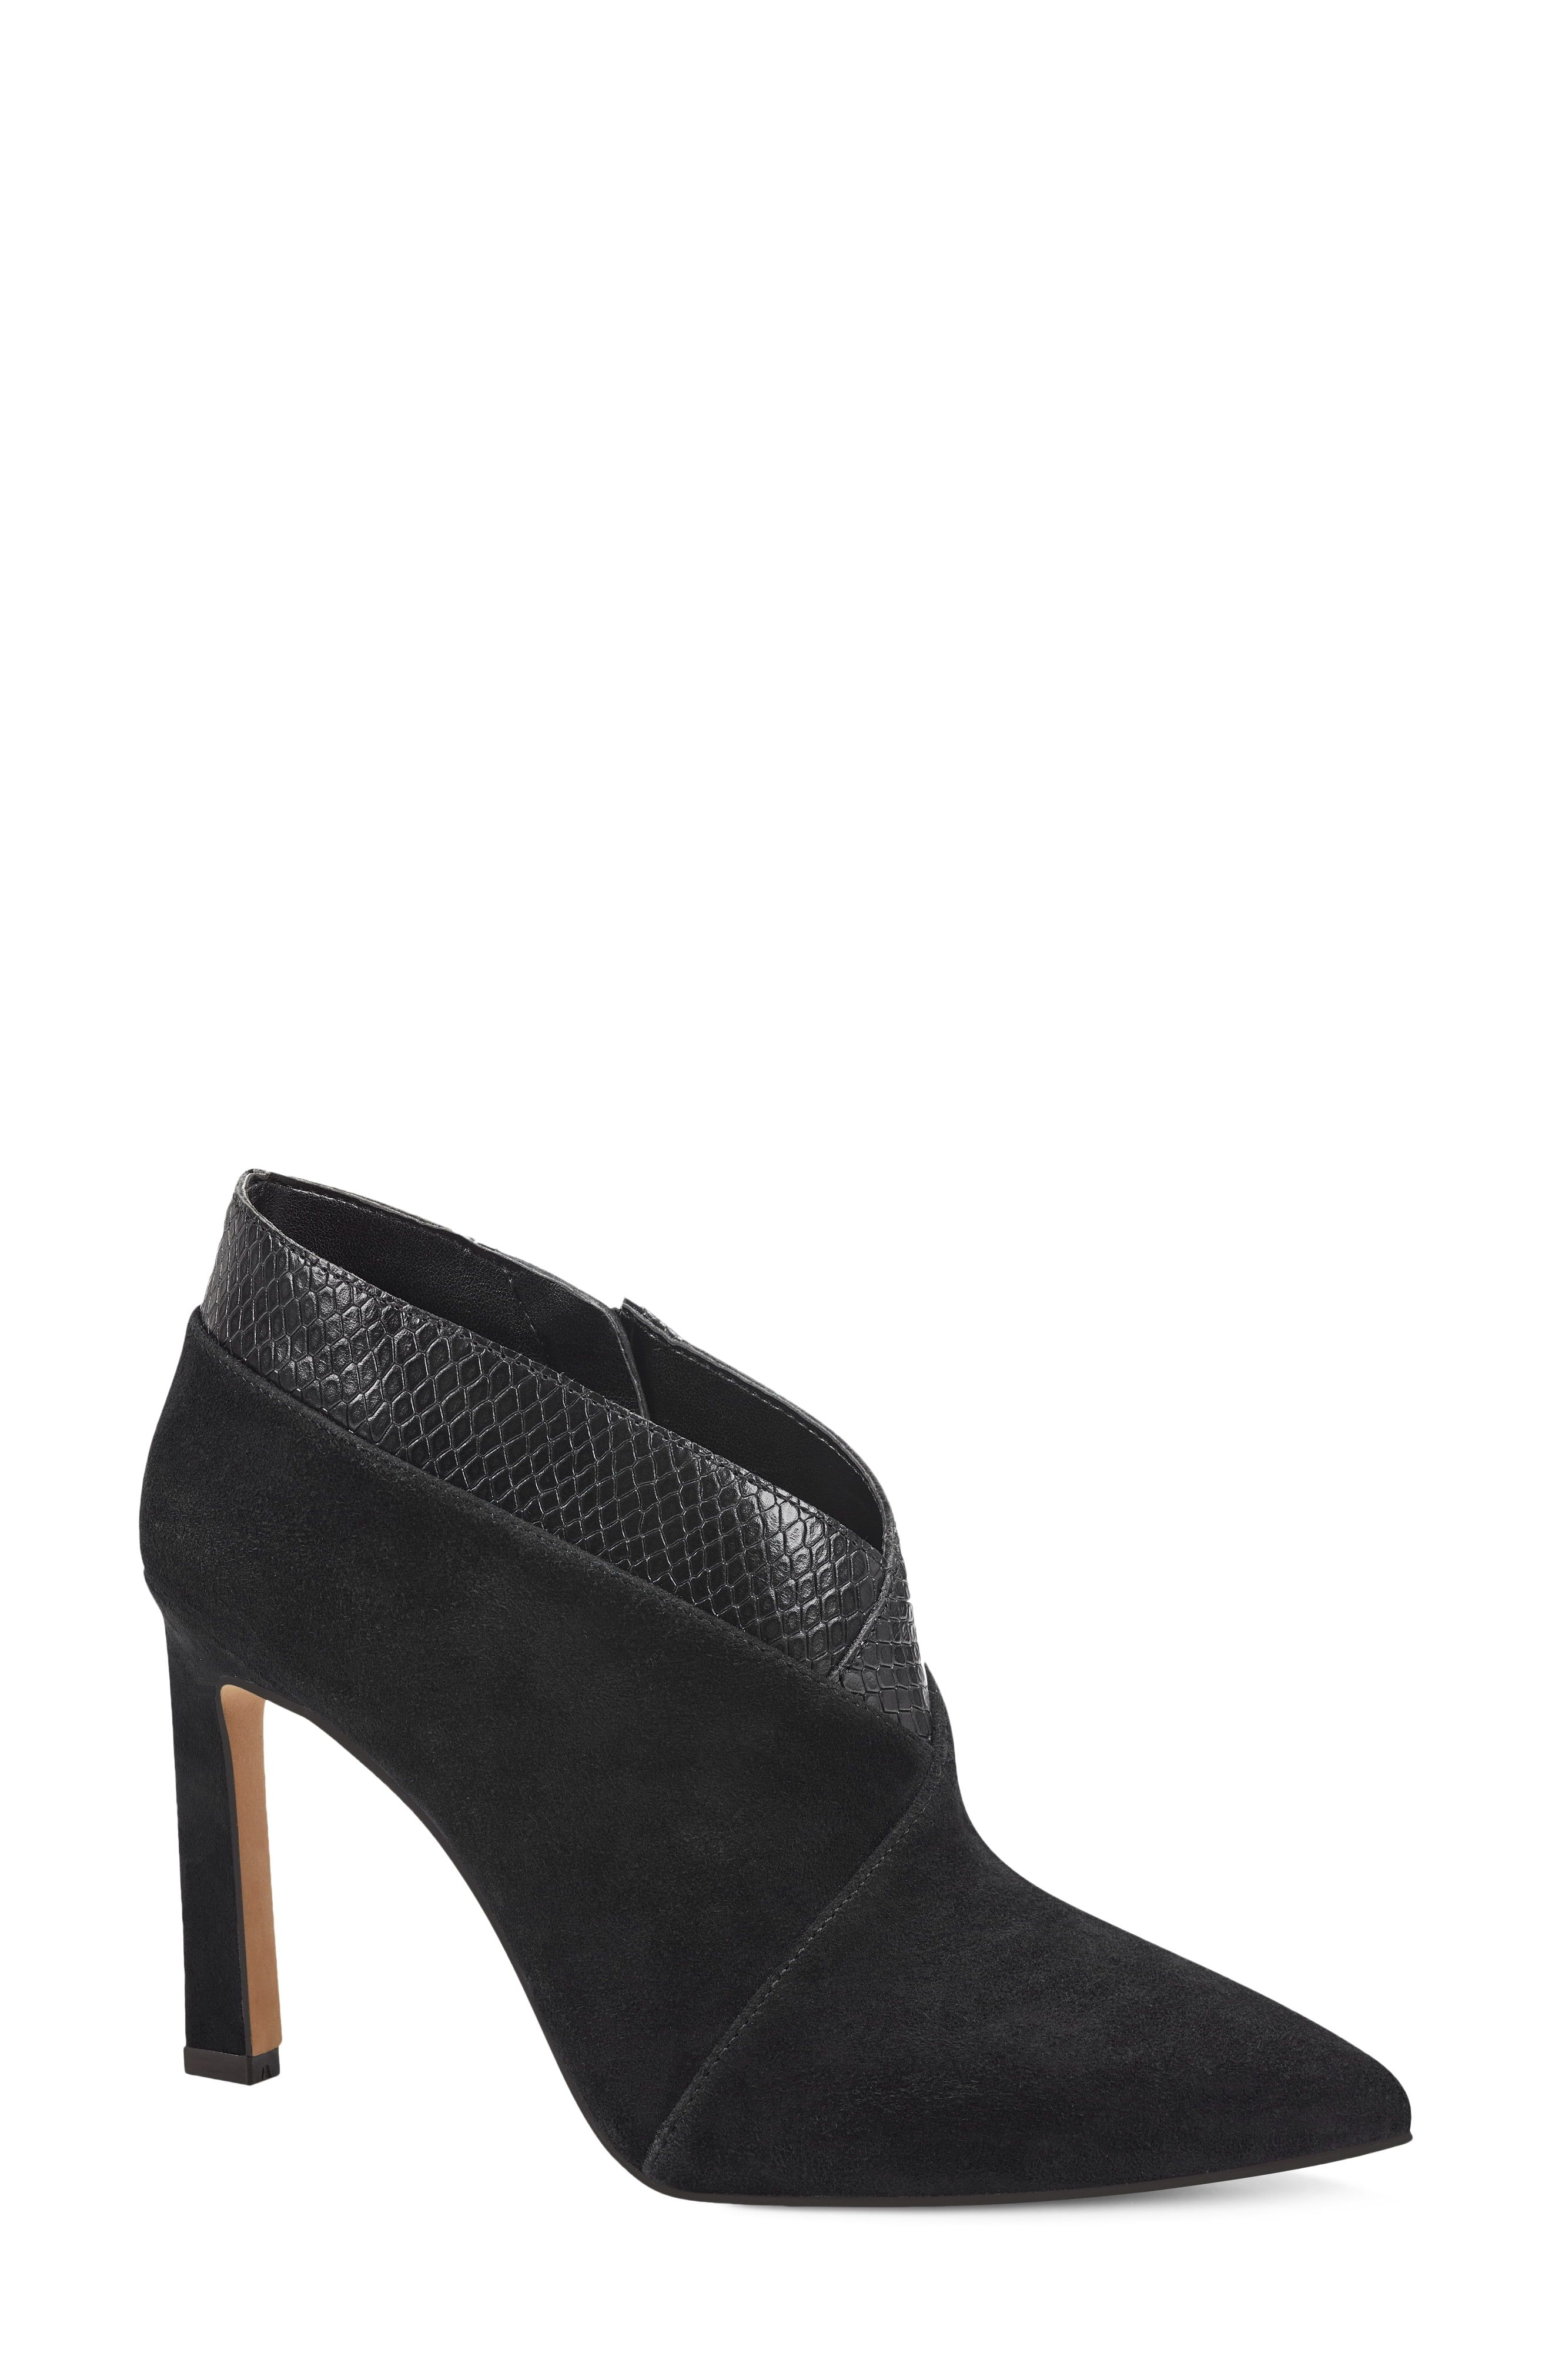 A pointy toe and lofty stiletto heel add scintillating modern style to this abbreviated bootie. Style Name:Vince Camuto Sempren Pointed Toe Bootie (Women). Style Number: 6122383. Available in stores.